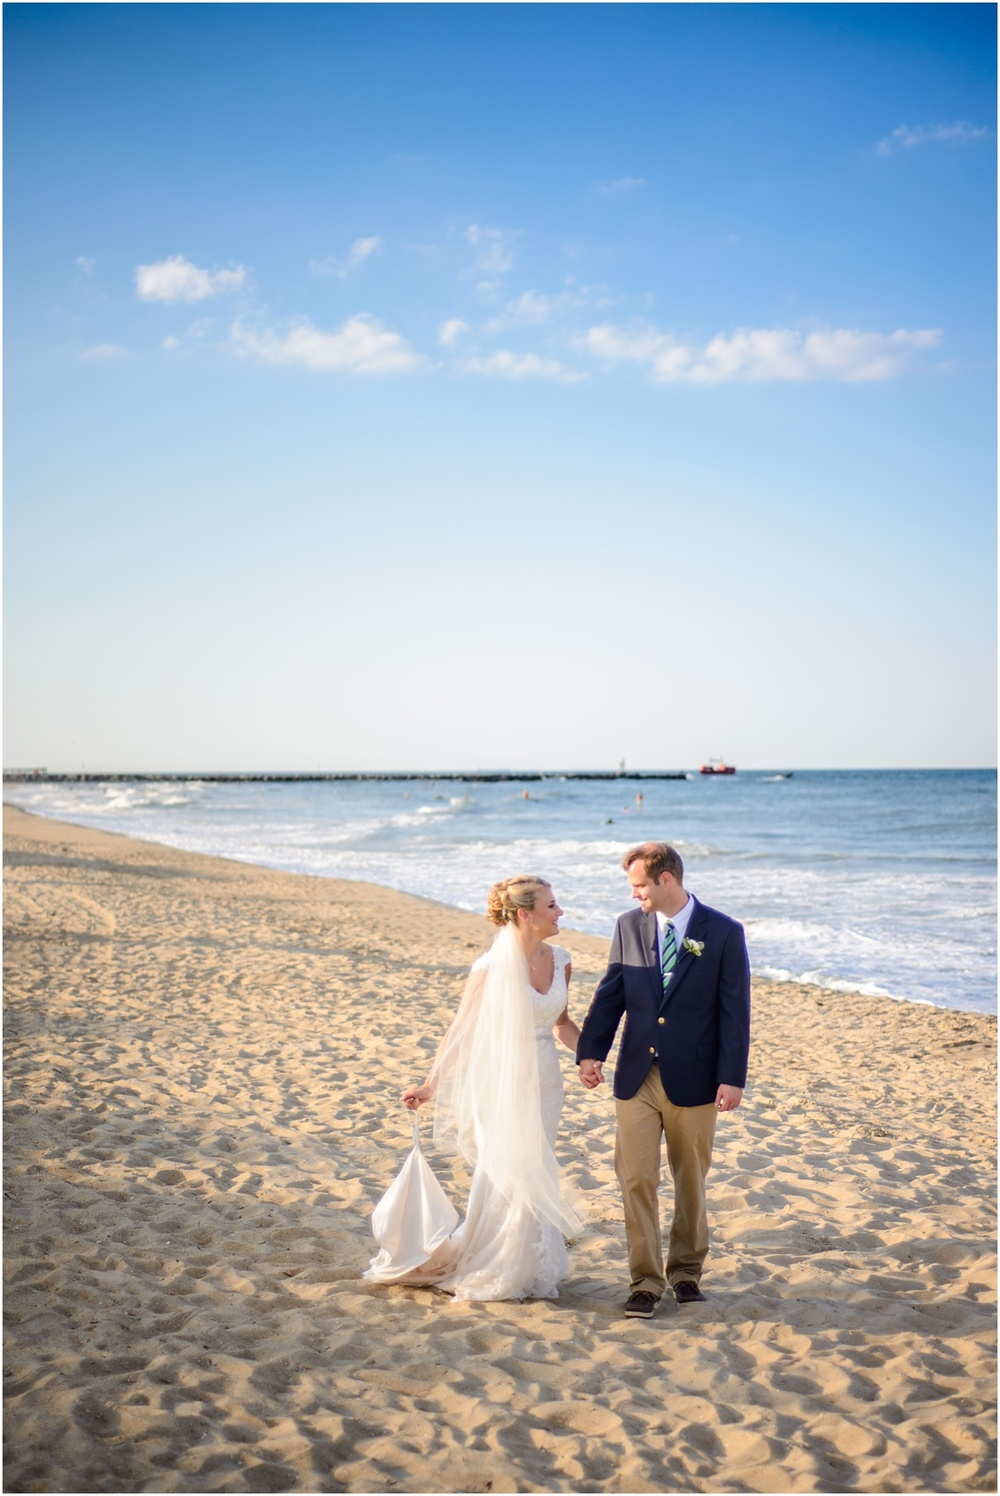 Greg Smit Photography Virginia Beach Destination wedding photographer_0042